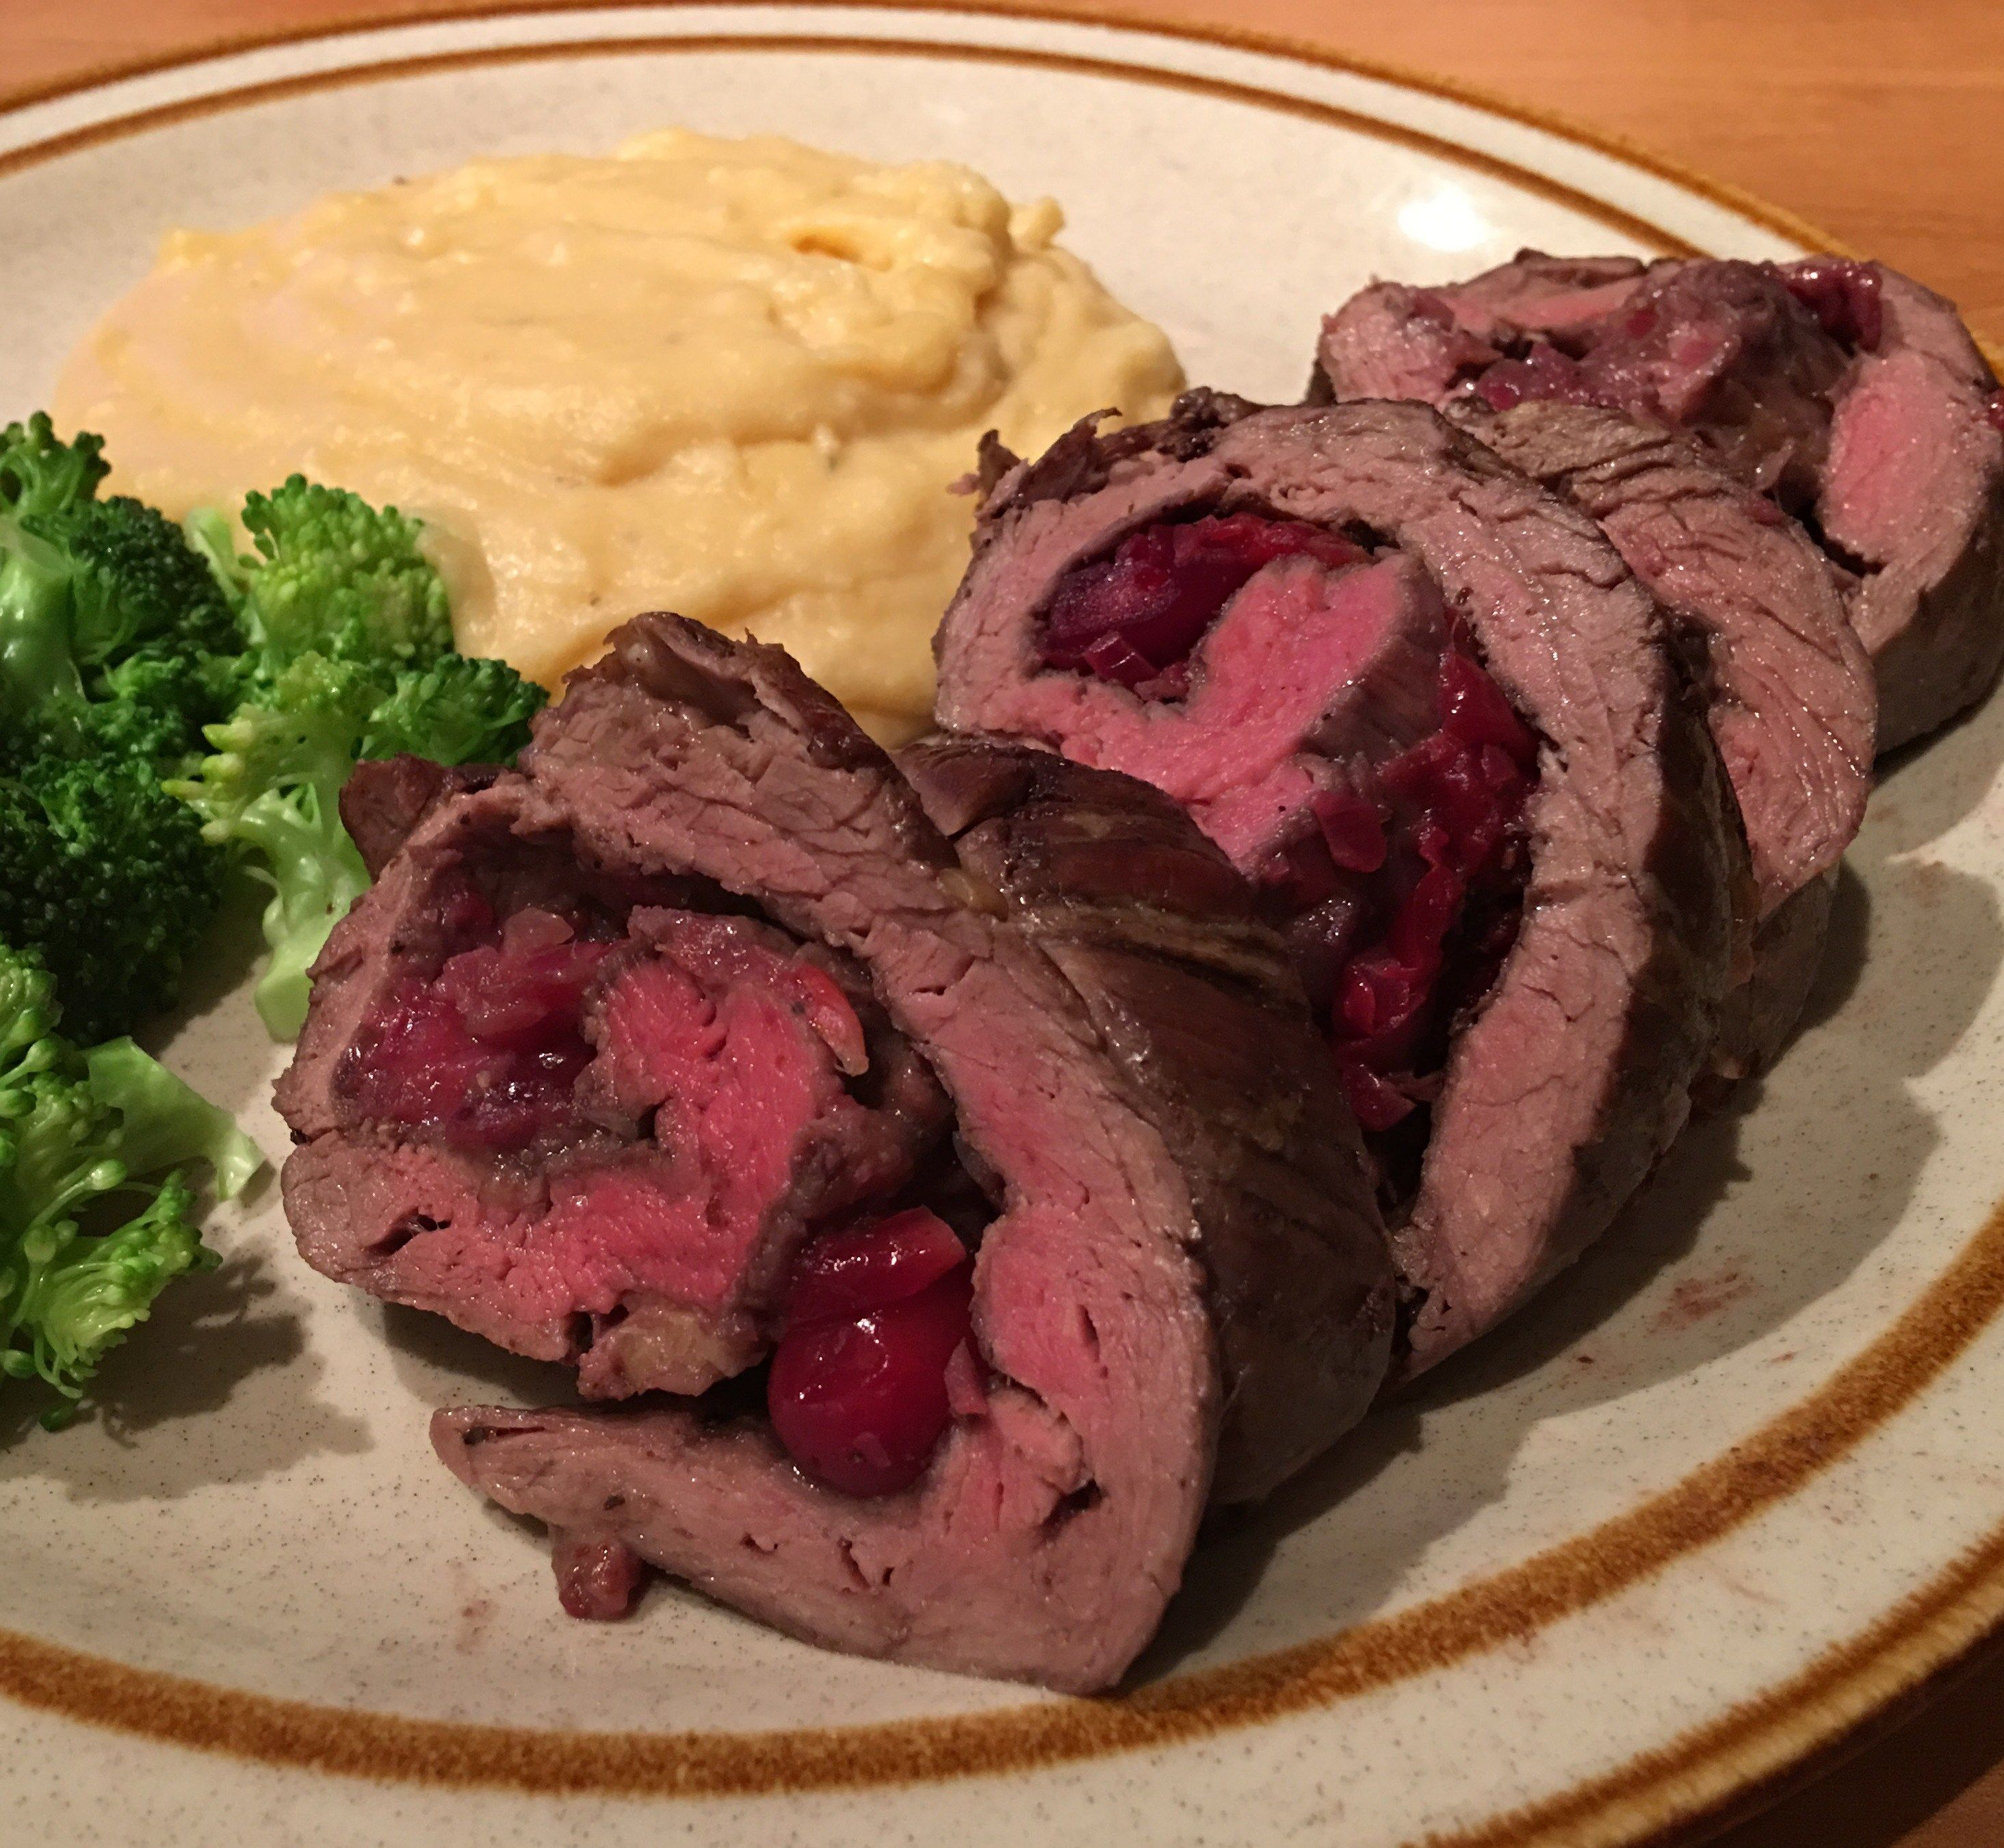 Cranberry Stuffed Beef Tenderloin With Red Wine Sauce Beef Tenderloin Recipes Tenderloin Recipes Red Wine Sauce